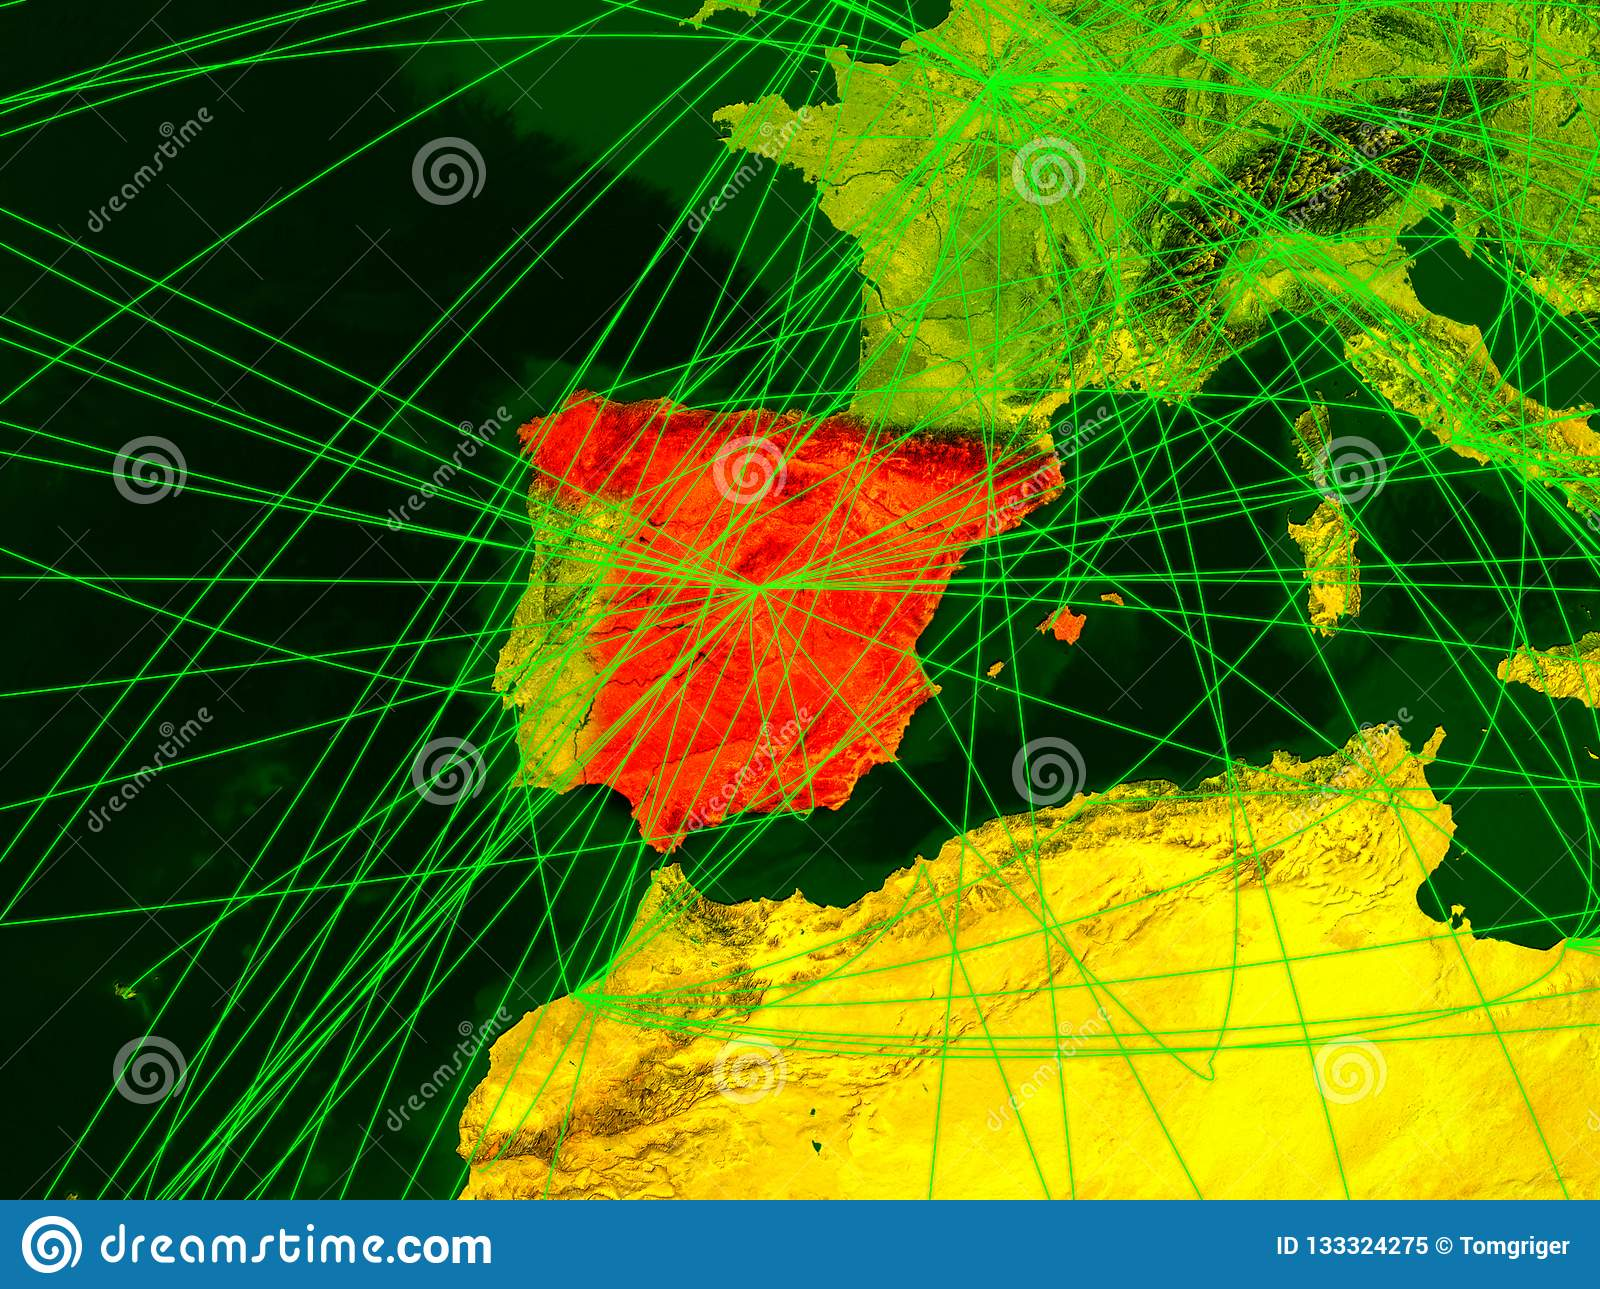 Travel Map Of Spain.Spain On Digital Map Stock Illustration Illustration Of World